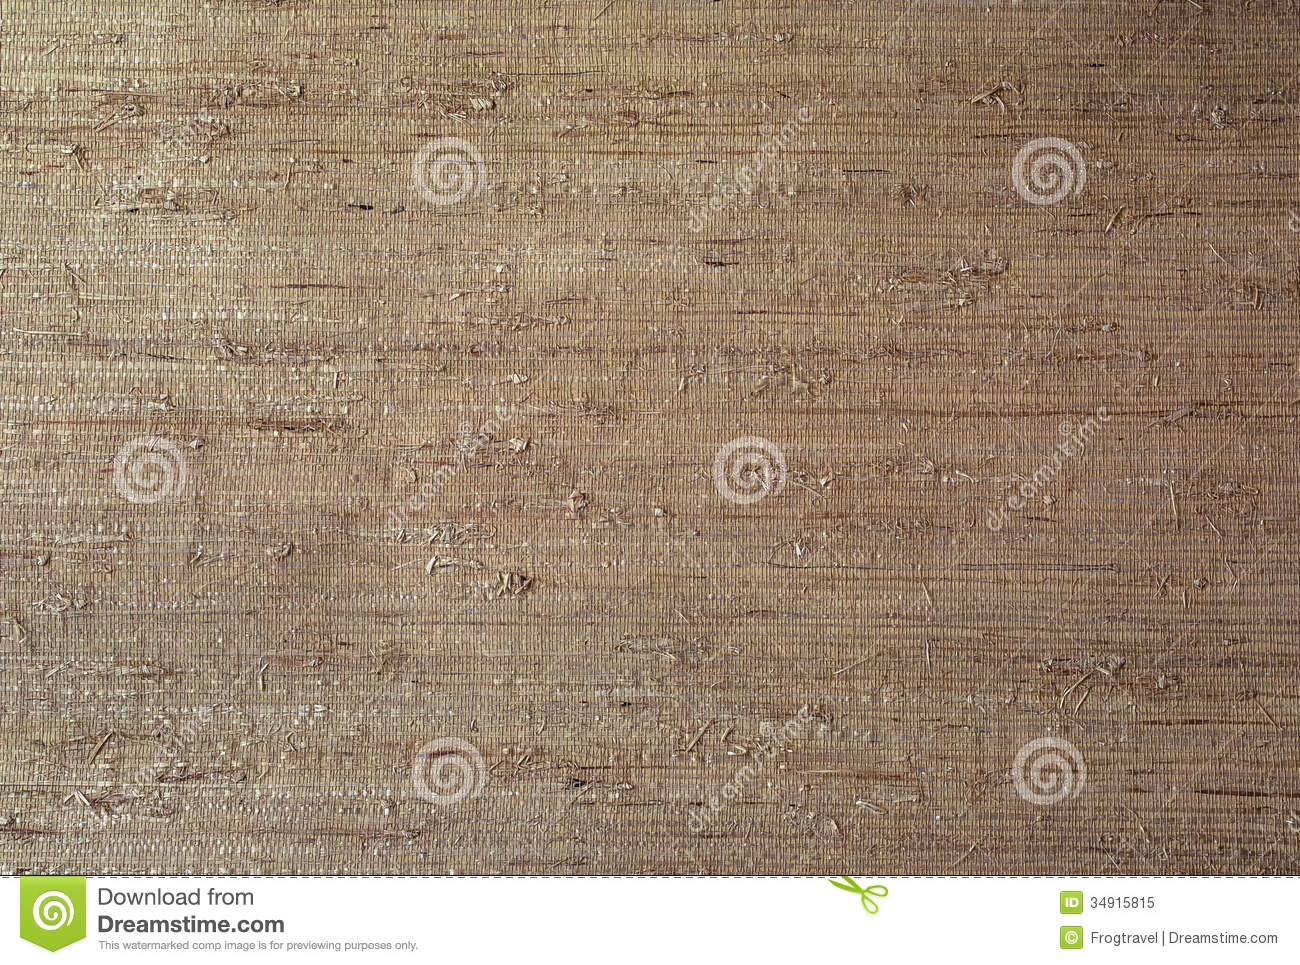 Background Cloth Design Fiber Grass Interior Material Natural Organic Straw Surface Texture